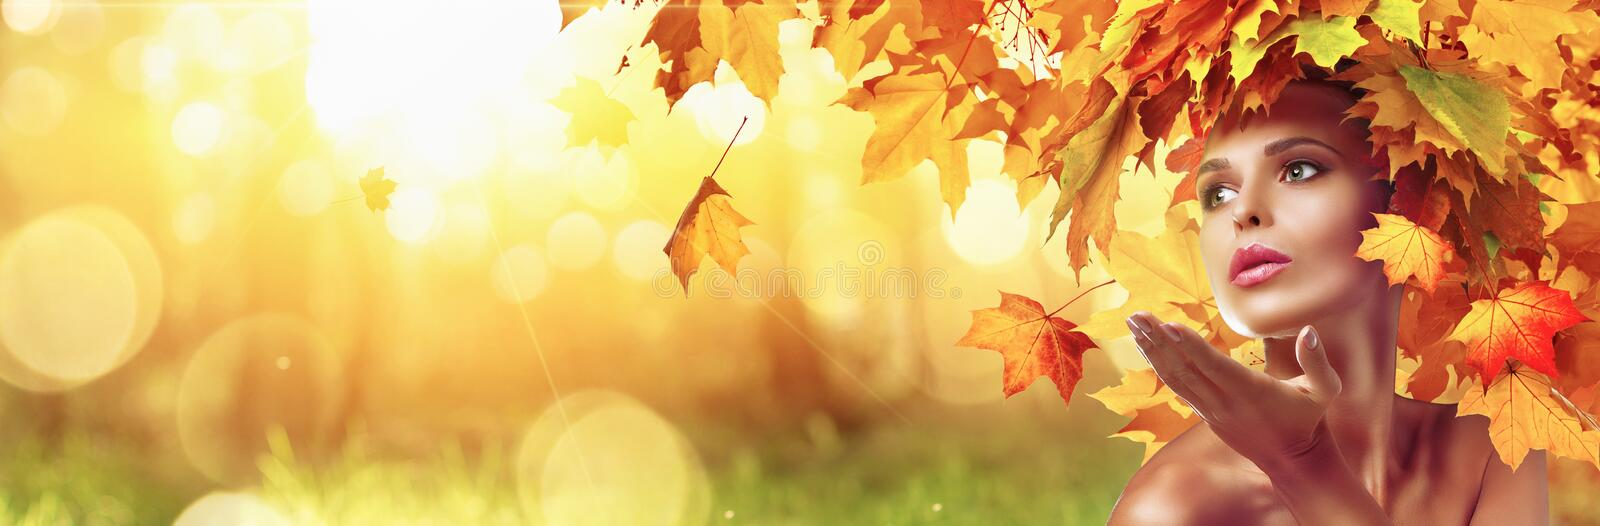 Beautiful High Fashion Woman In Autumn With Falling Leaves royalty free stock images